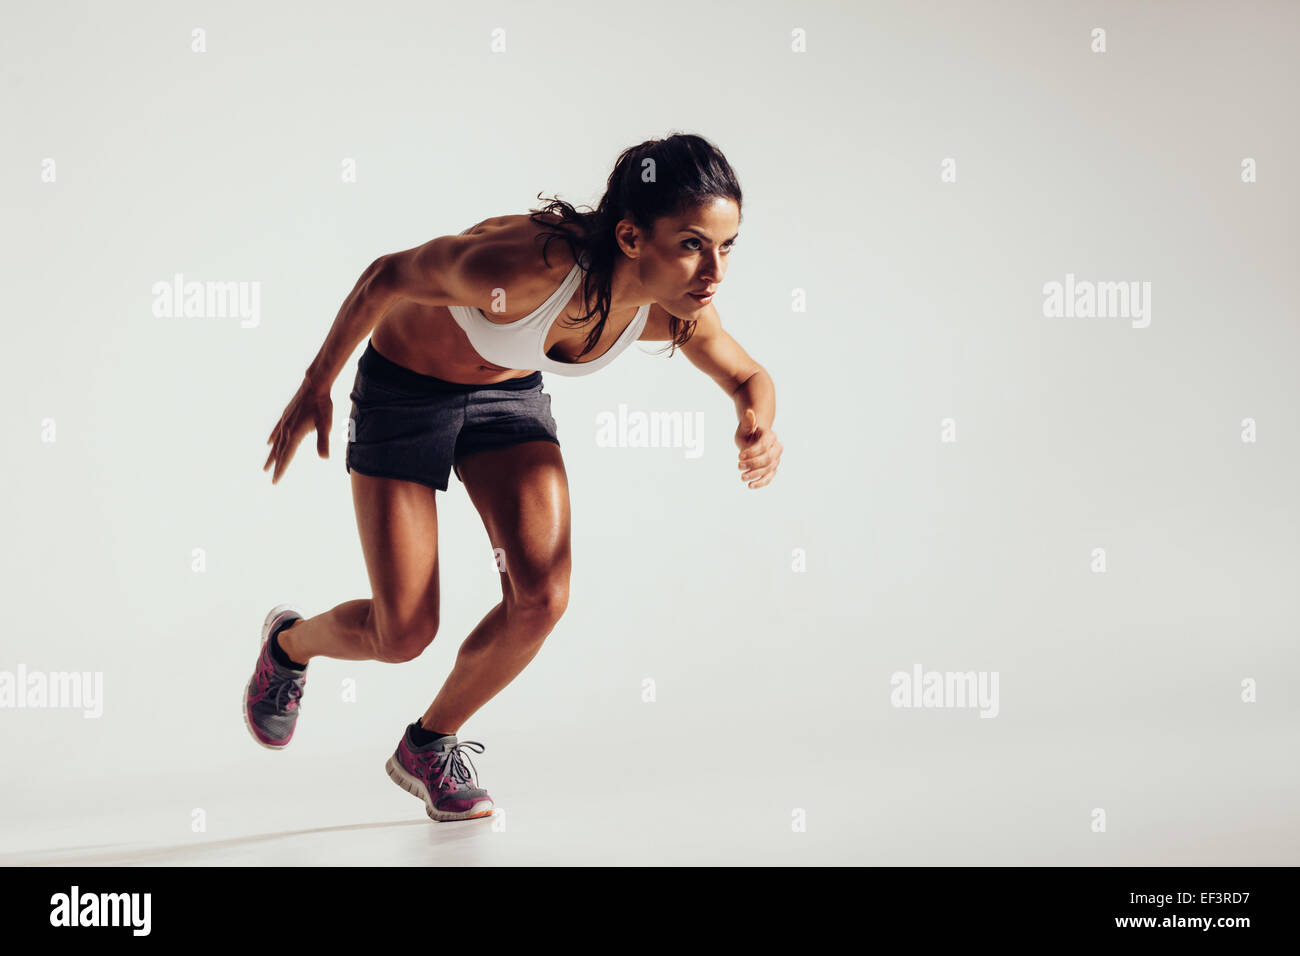 Energetic young woman running over grey background. Focused young female athlete running. - Stock Image